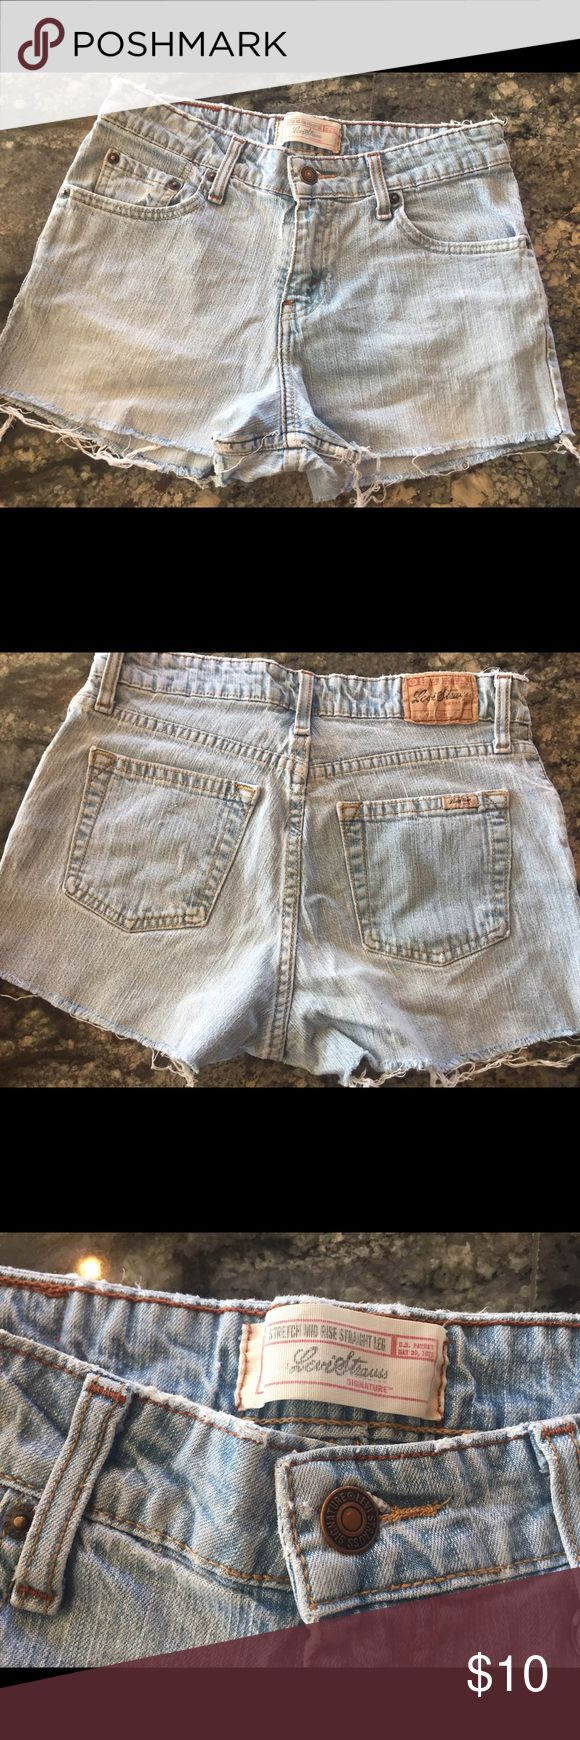 Levi bleached denim cutoff shorts, size 4 Excellent used condition, adorable on! Levi's Shorts Jean Shorts